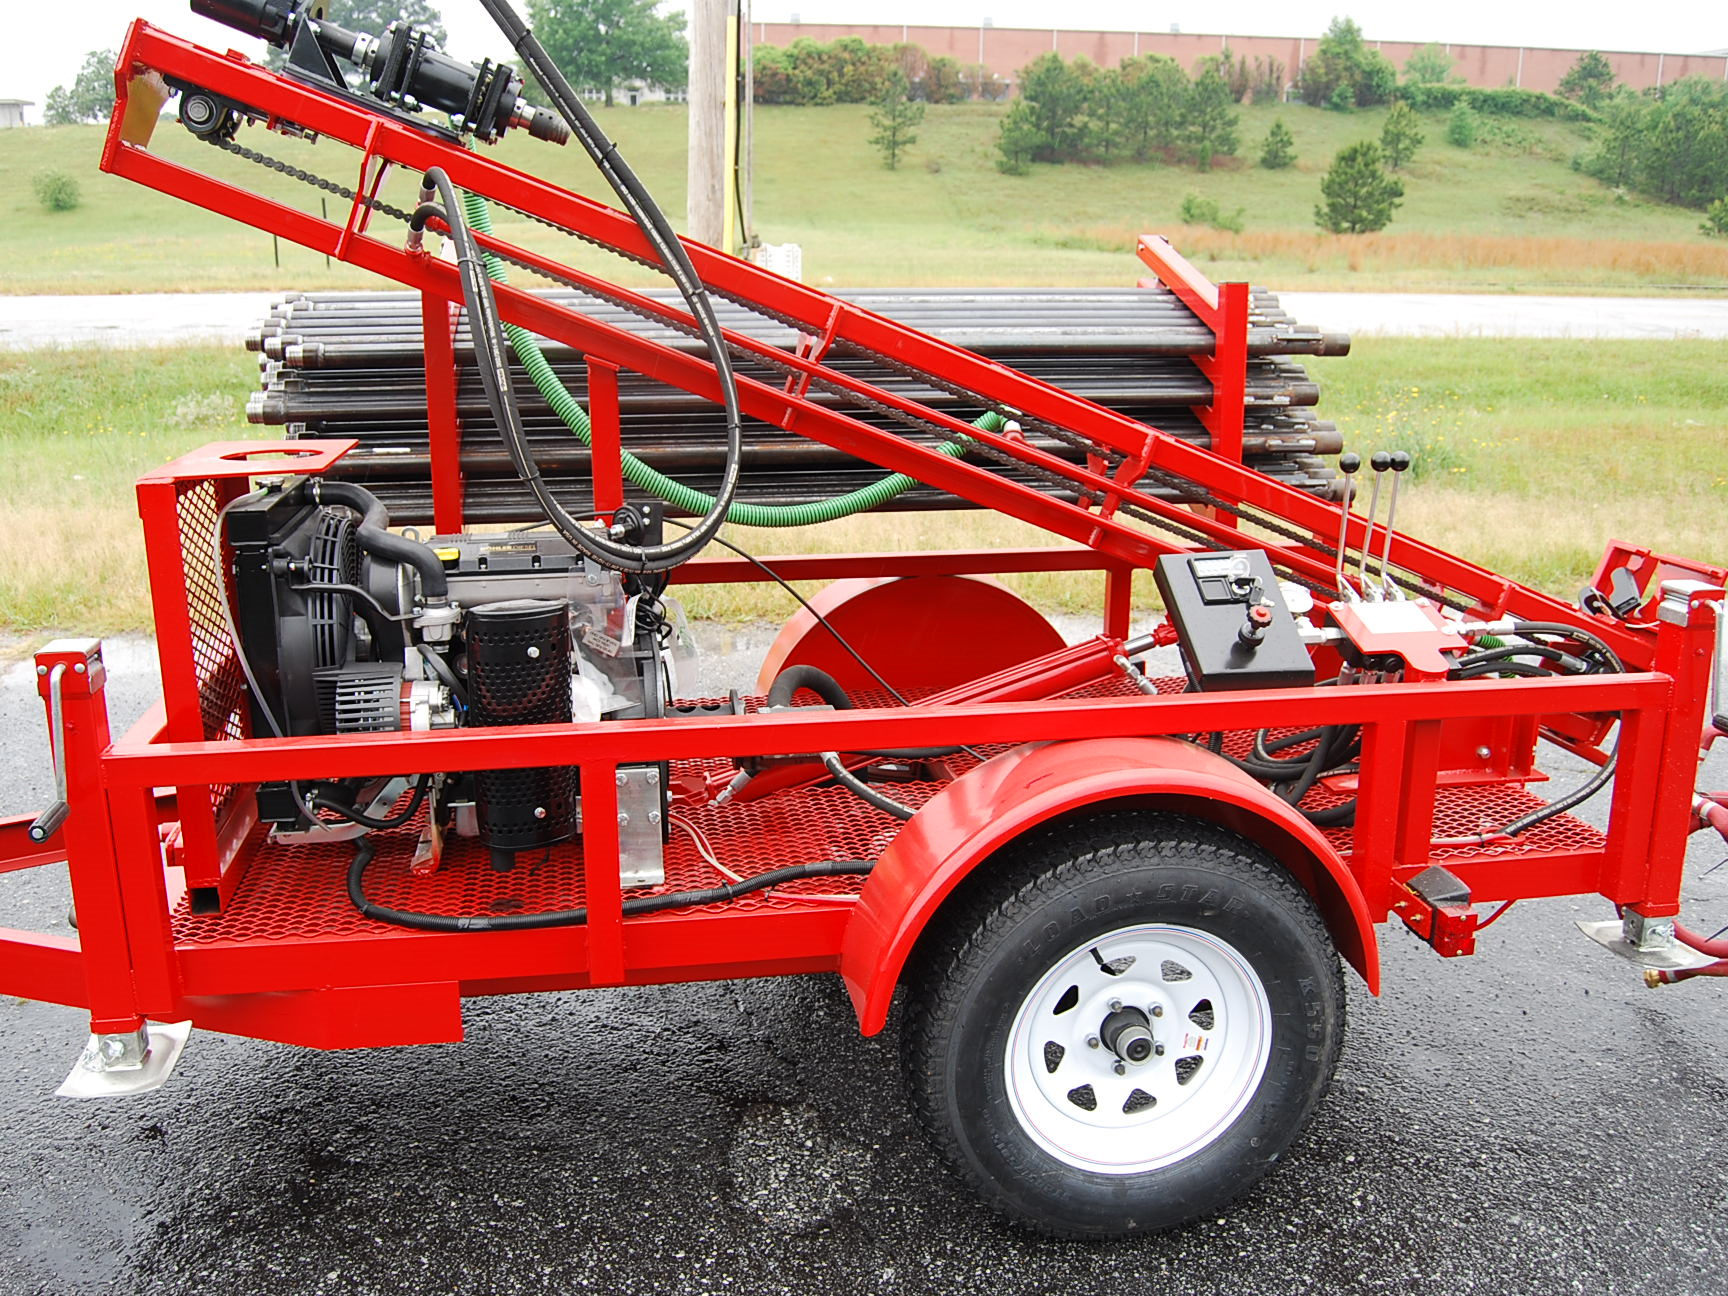 Hydraulic Well Bore Rig Wells For The World is looking to purchase ~$16,000